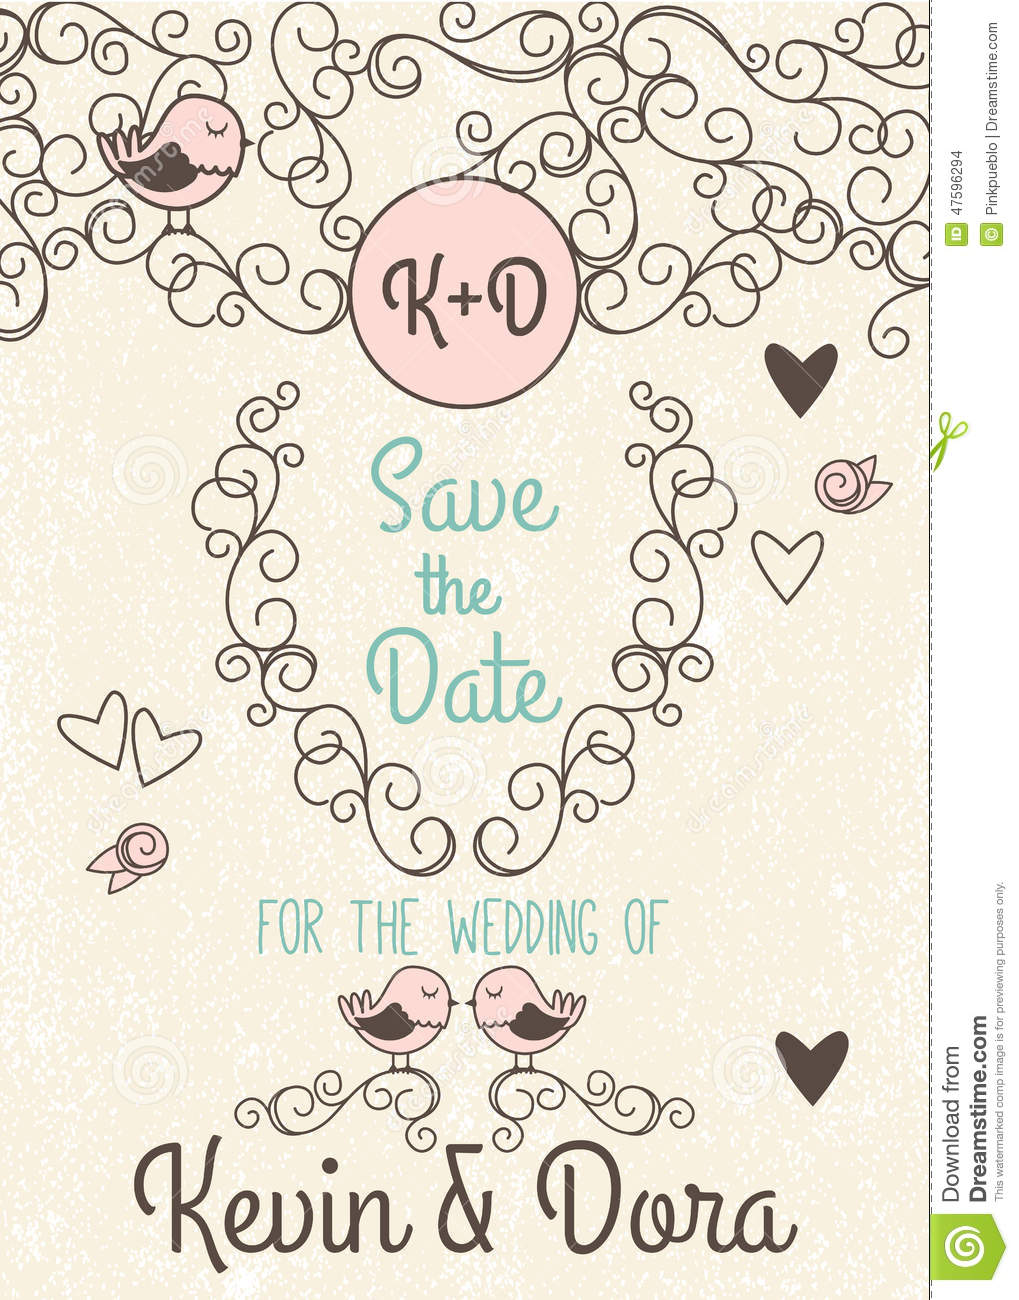 Doodle Style Wedding Invitation With Love Birds And Monogram Stock ...